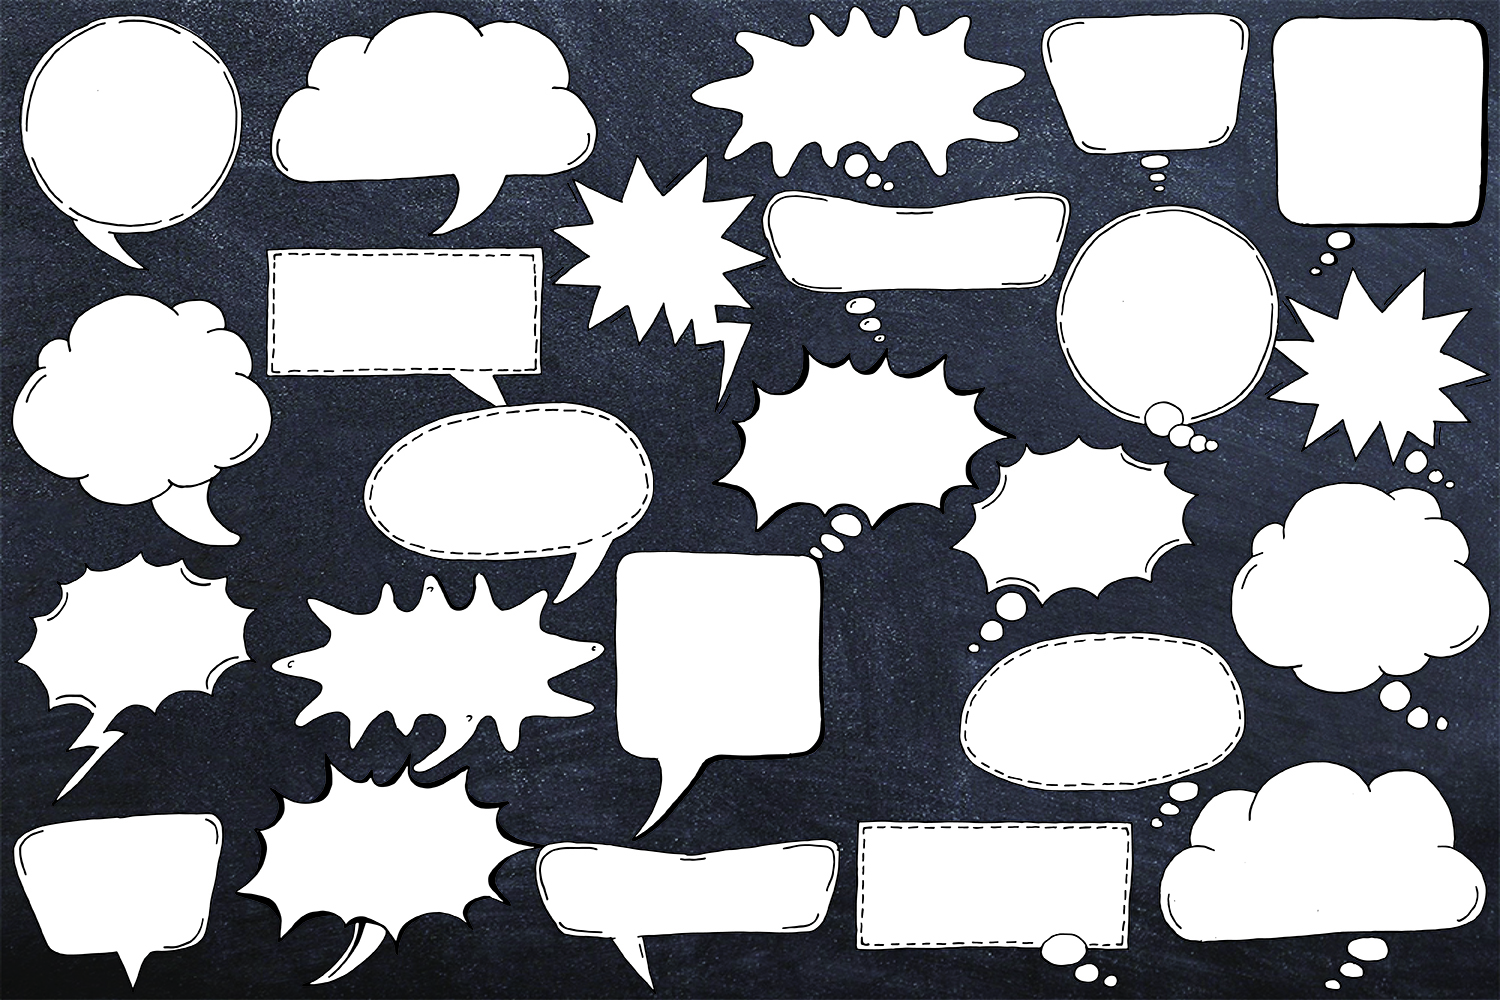 24 Hand Drawn Black and White Speech Bubbles Doodle Clipart example image 3